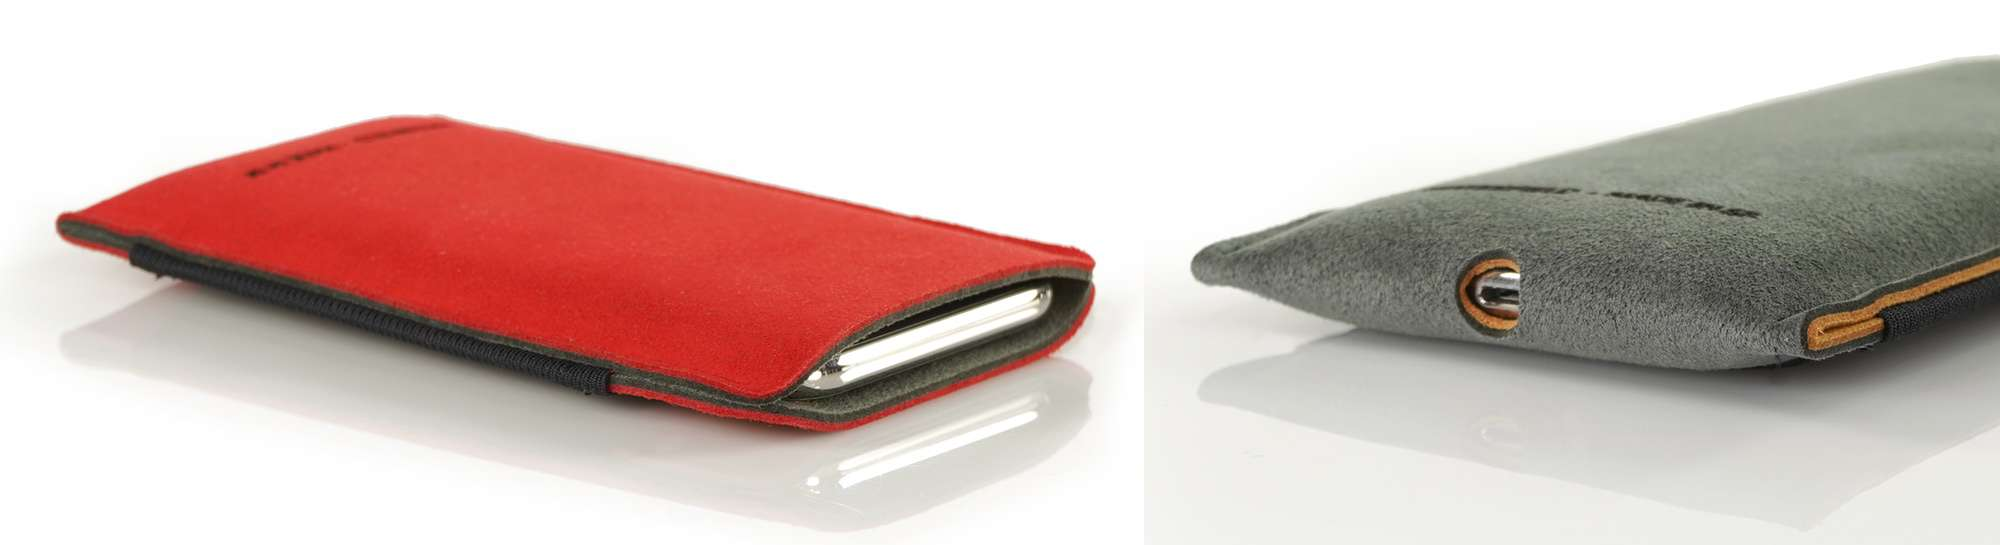 Waterfield's new Fused Suede Case looks as good as you'd expect.